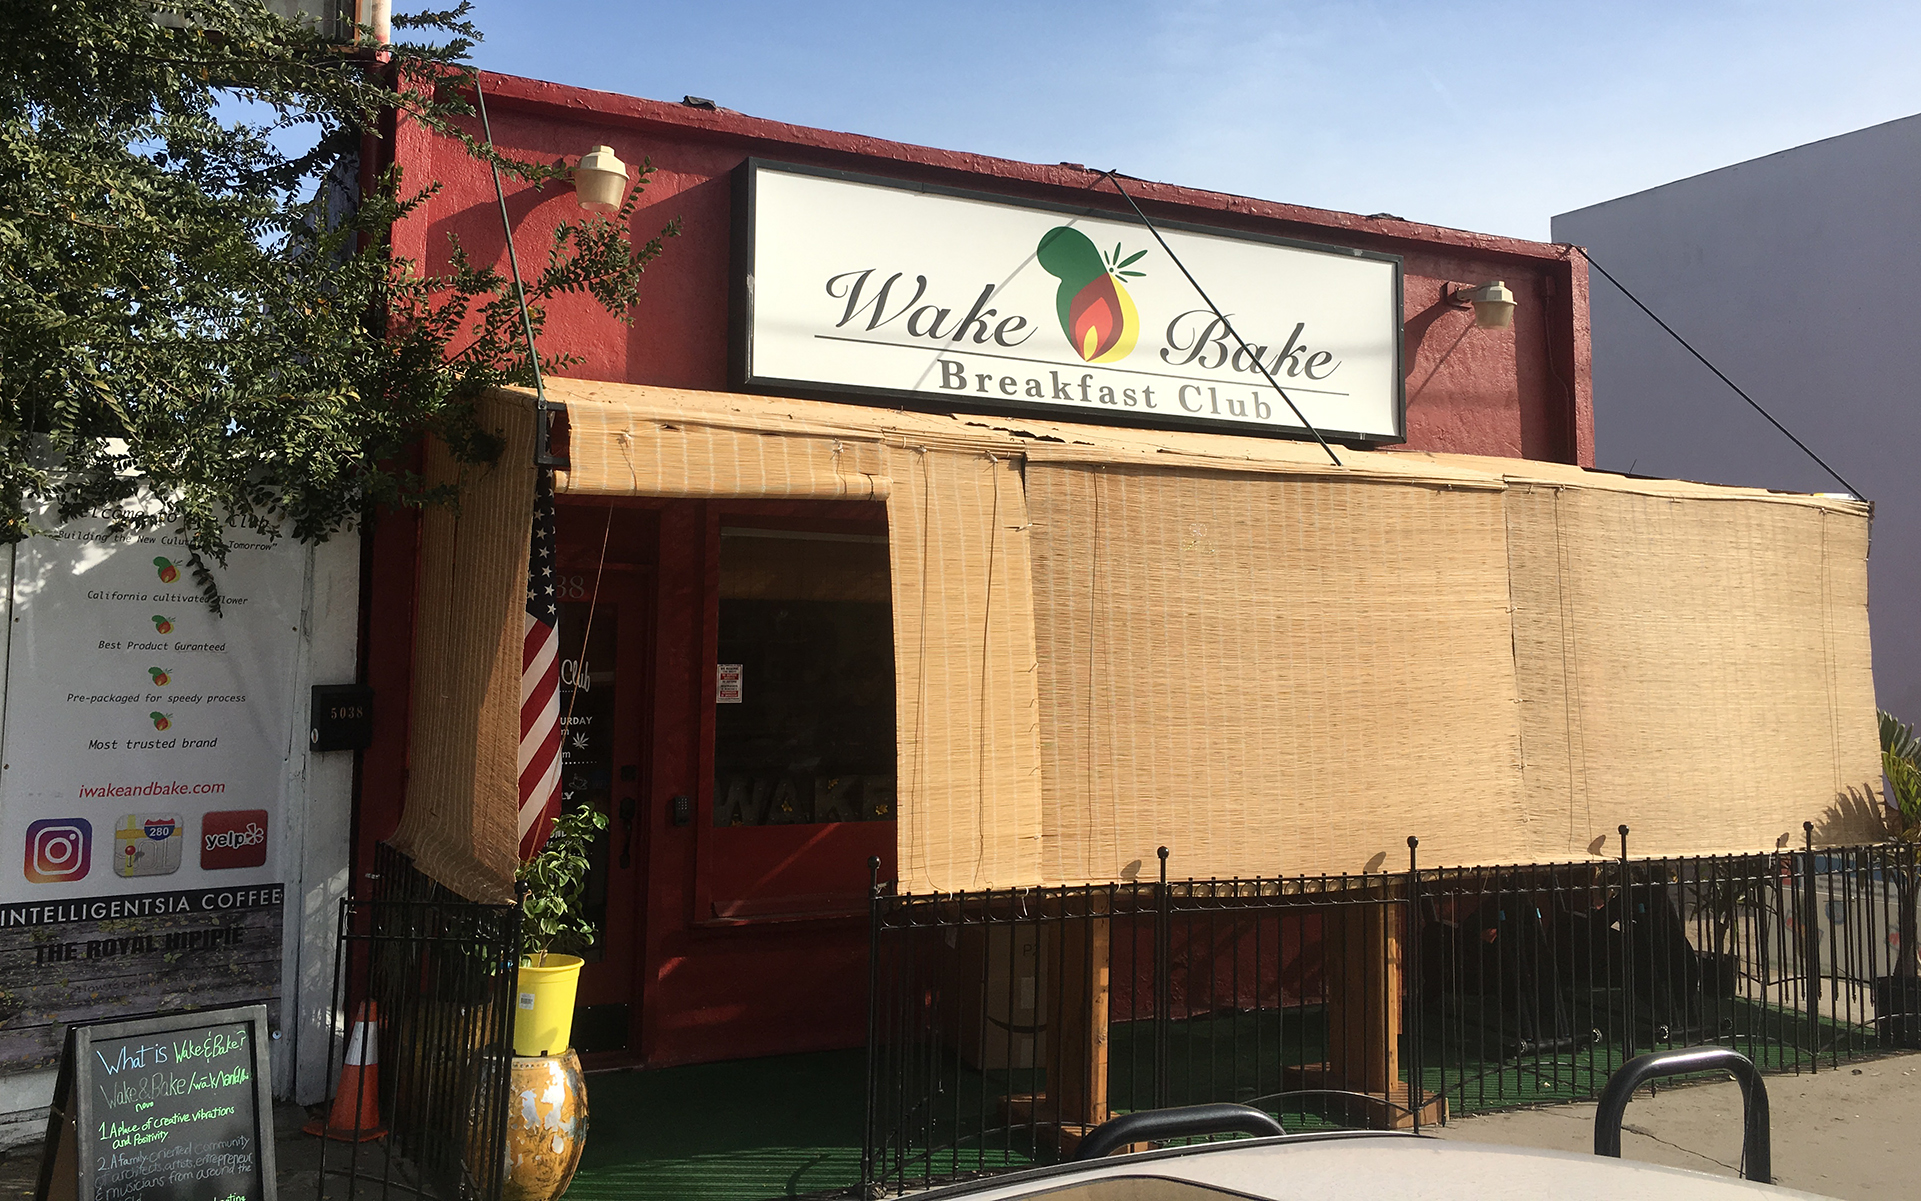 The Wake and Bake Club in Los Angeles, California